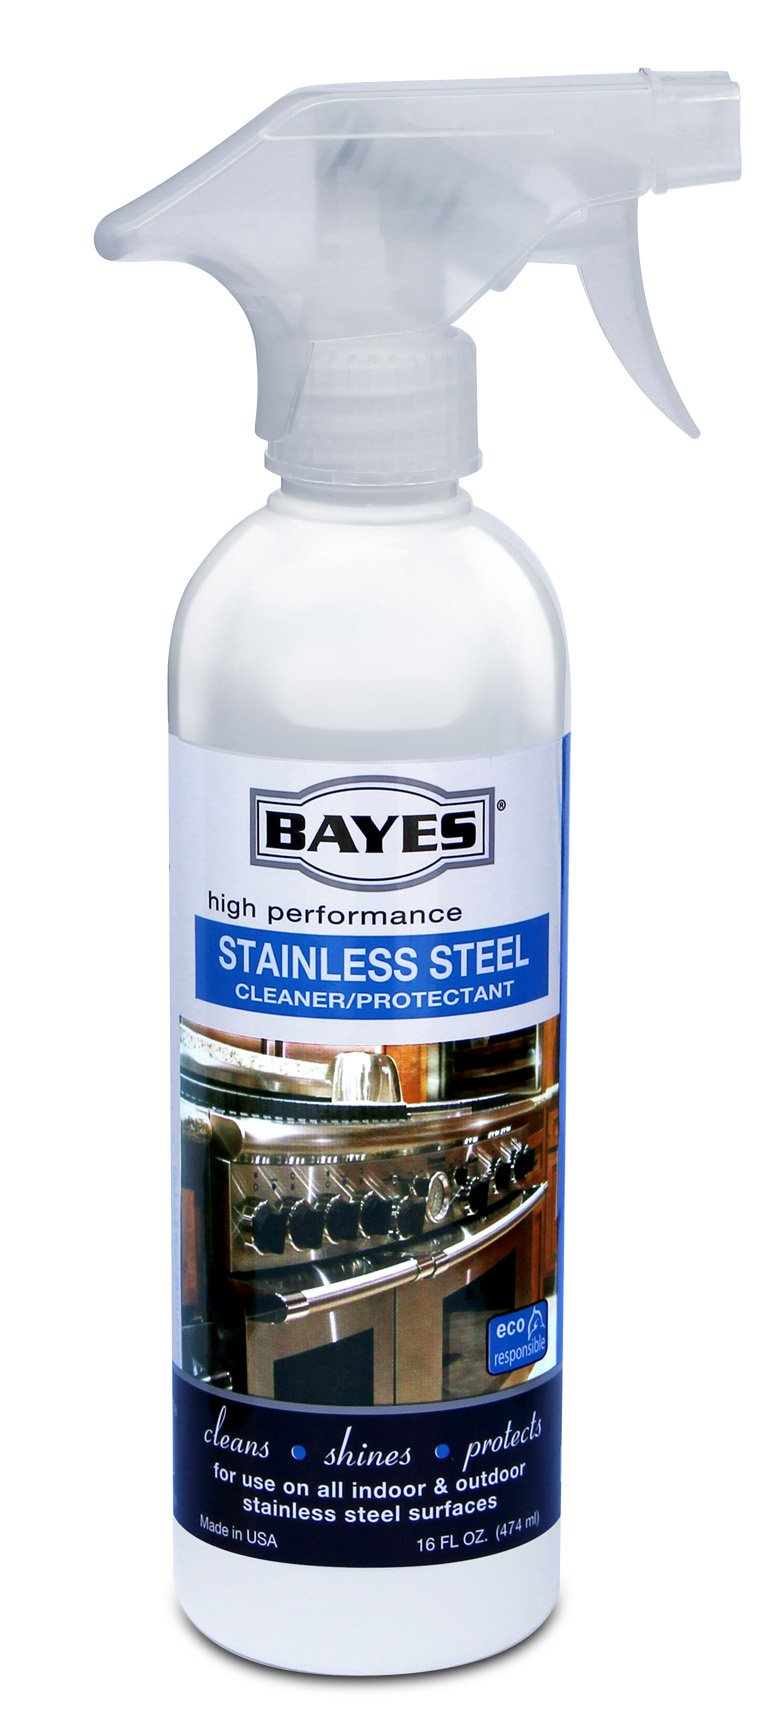 Bayes Premium Stainless Steel Cleaner and Protectant, 16 oz, Pack of 6